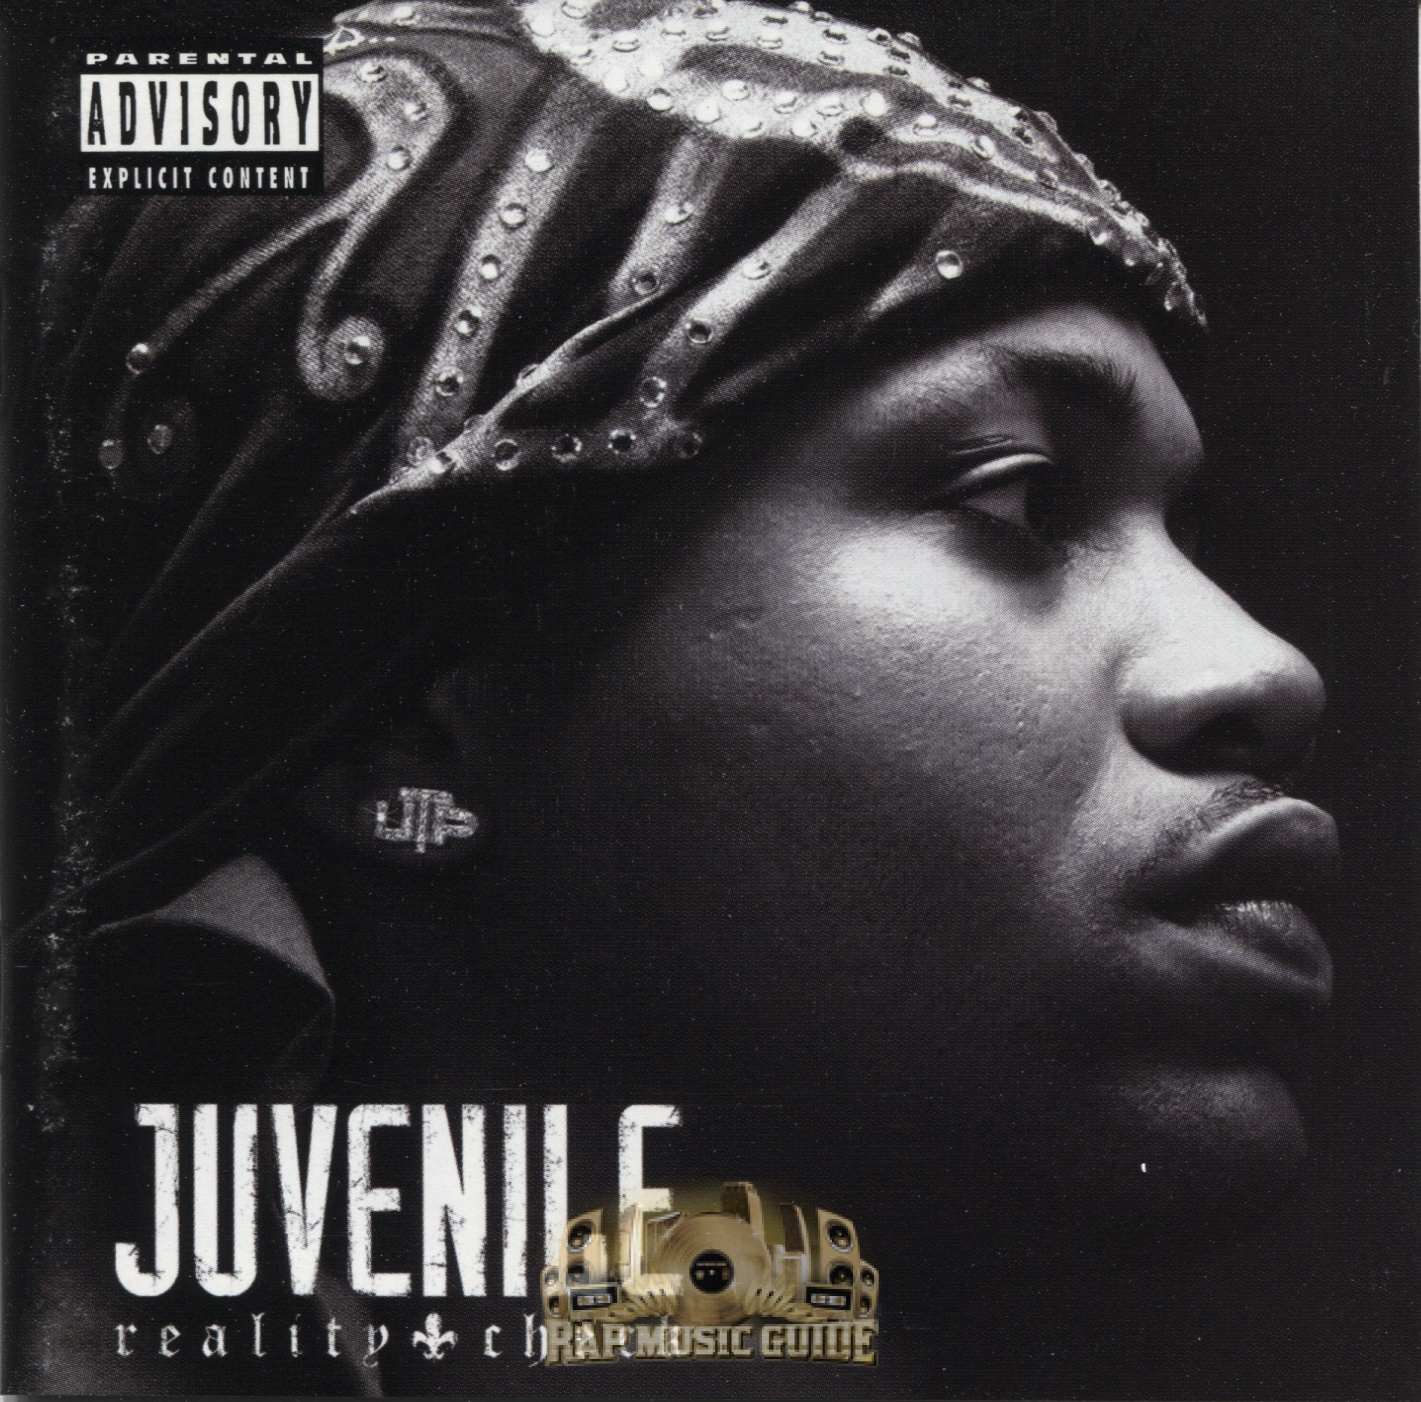 Juvenile Reality Check Cd Rap Music Guide